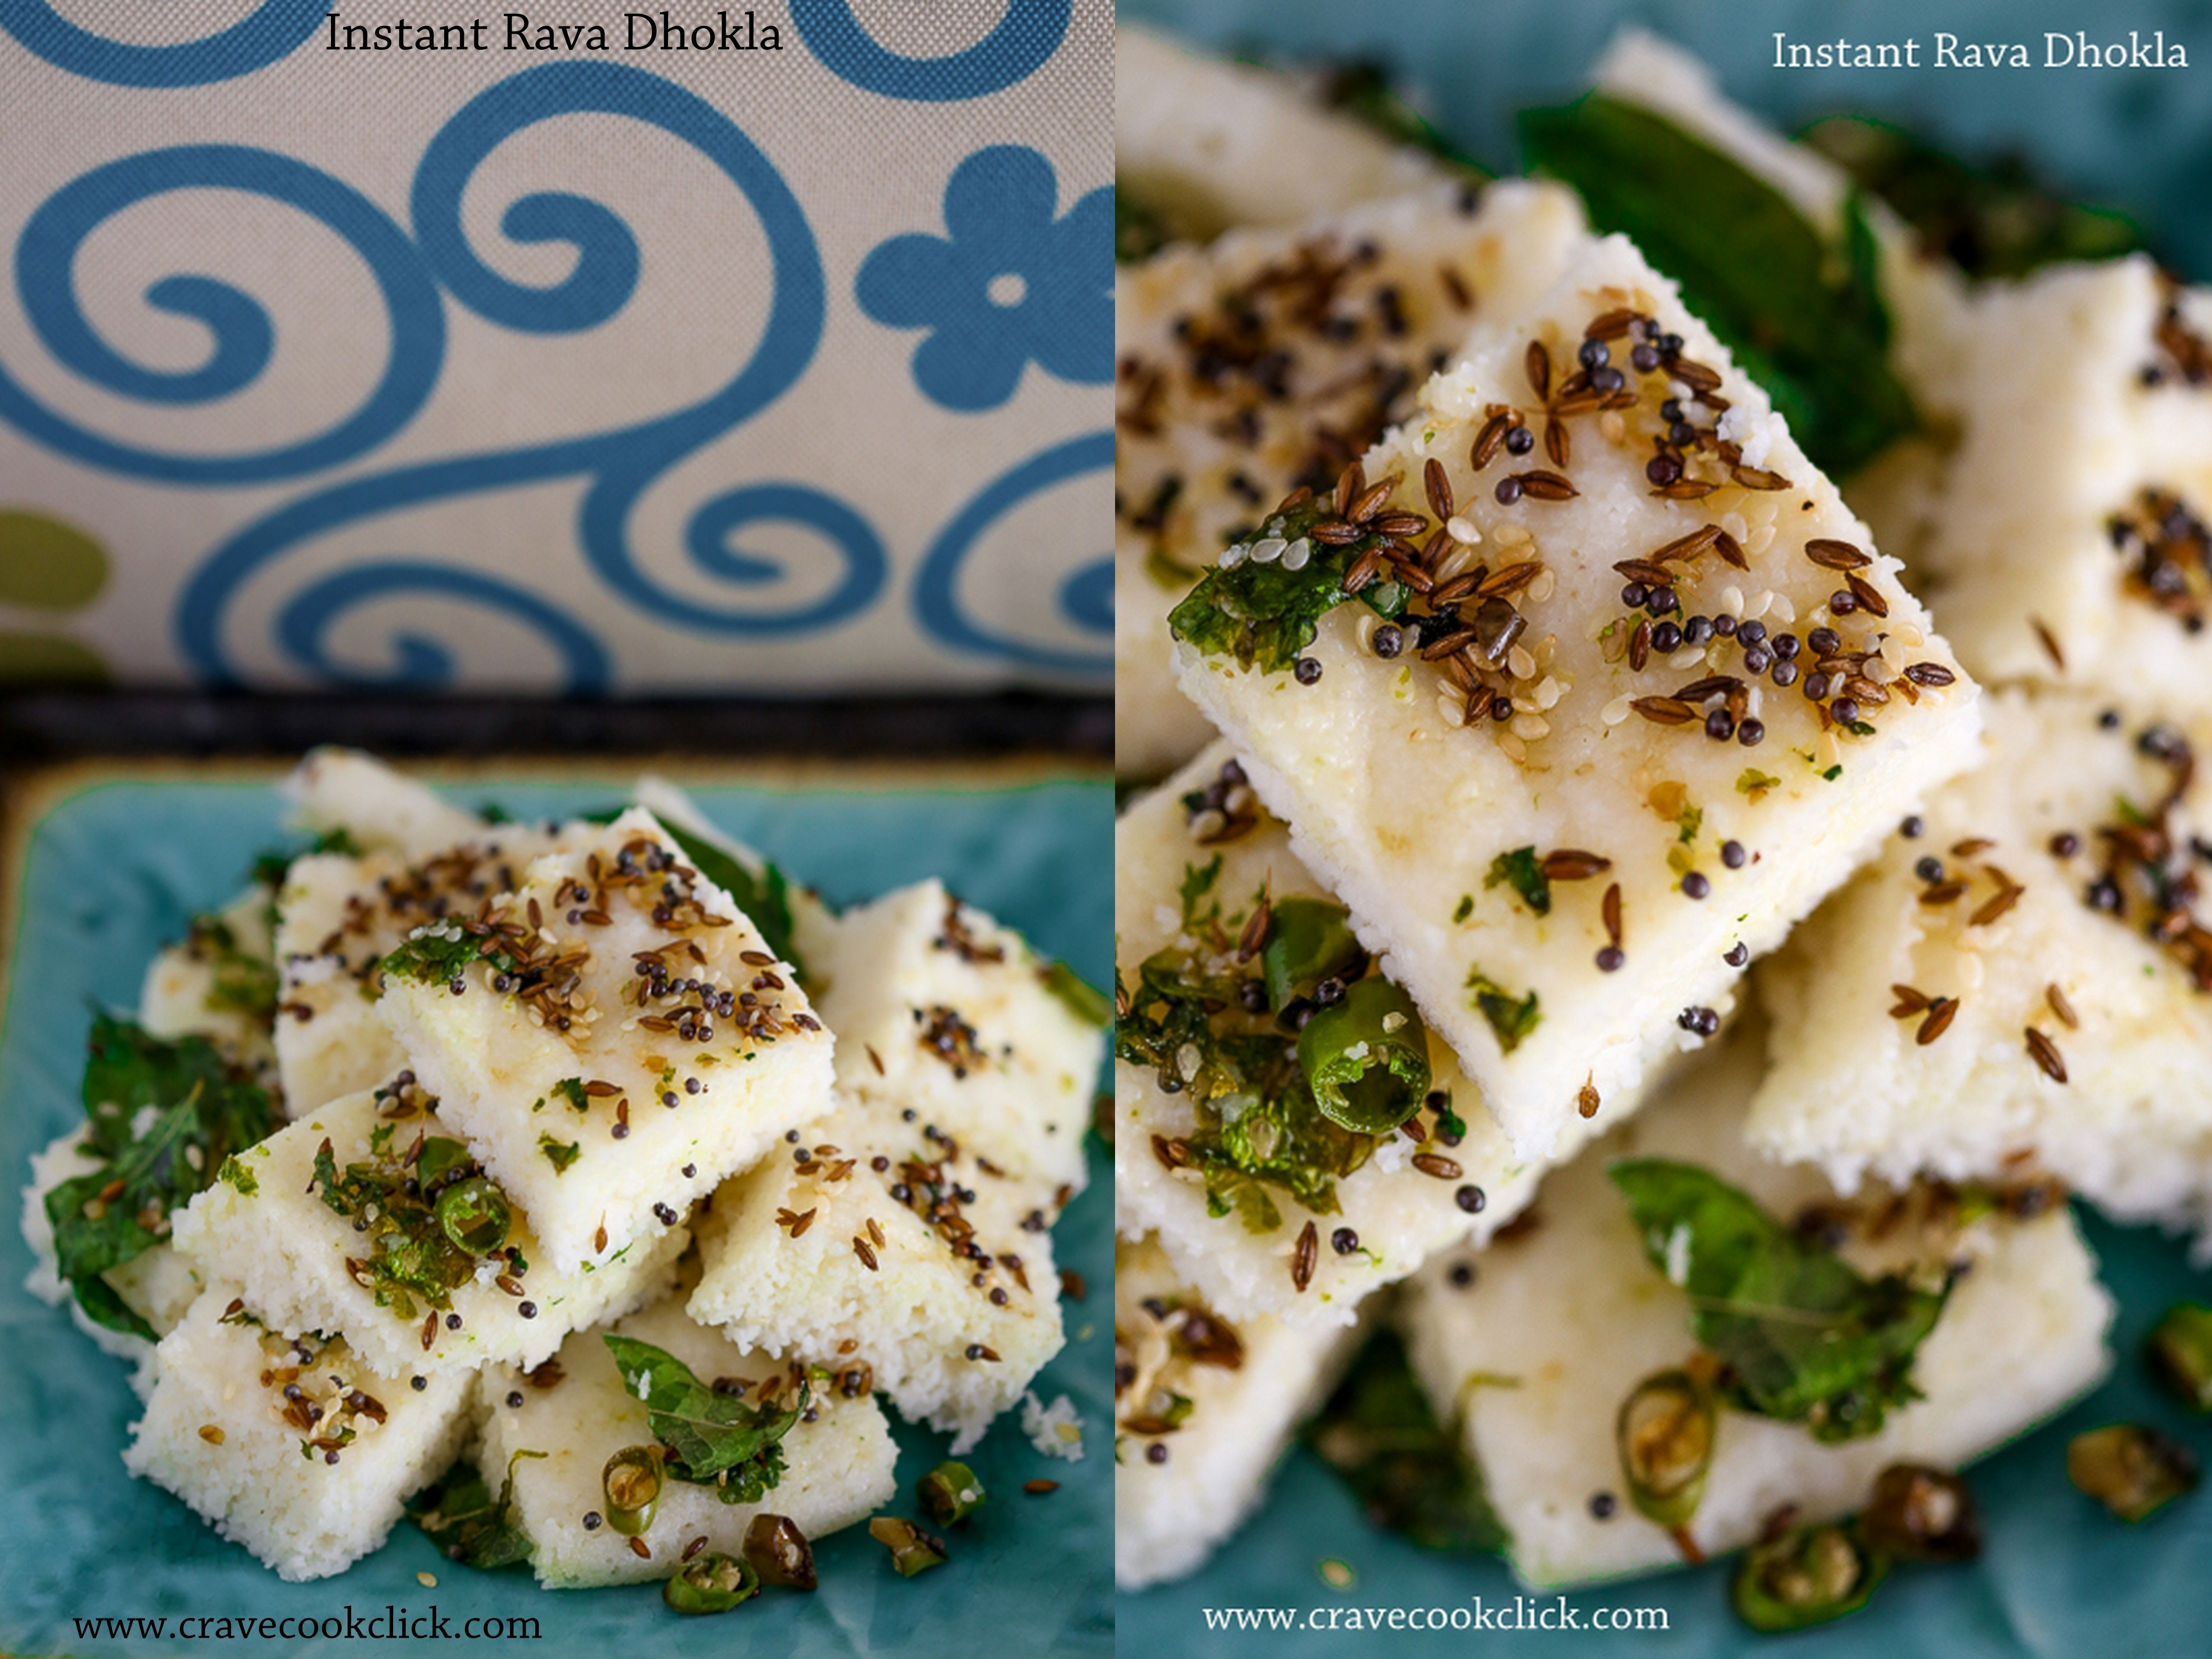 Rava dhokla recipe indian appetizers tasty and snacks rava dhokla recipe crave cook click dhokla indian appetiser snacks forumfinder Gallery